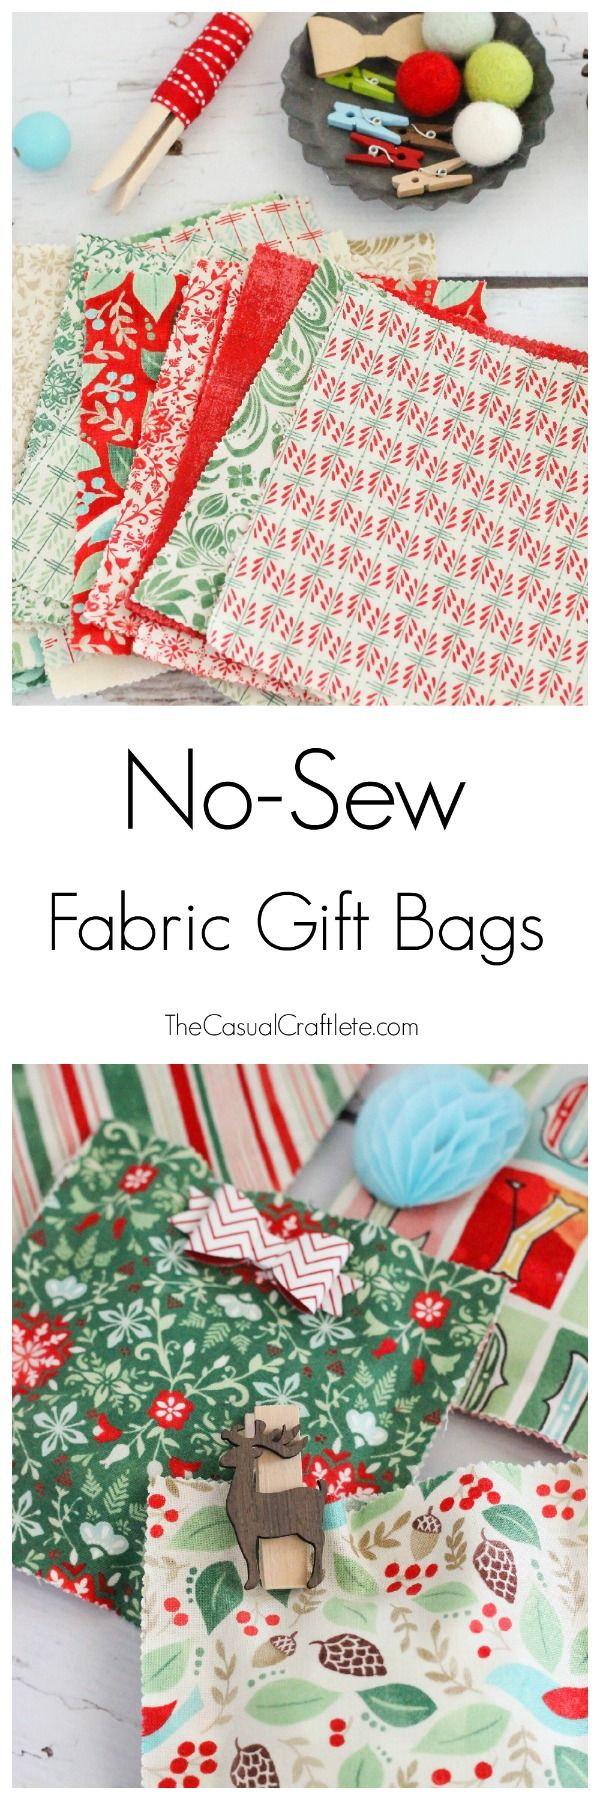 Create your own No-Sew Fabric Gift Bags that are perfect for gift giving this holiday season.